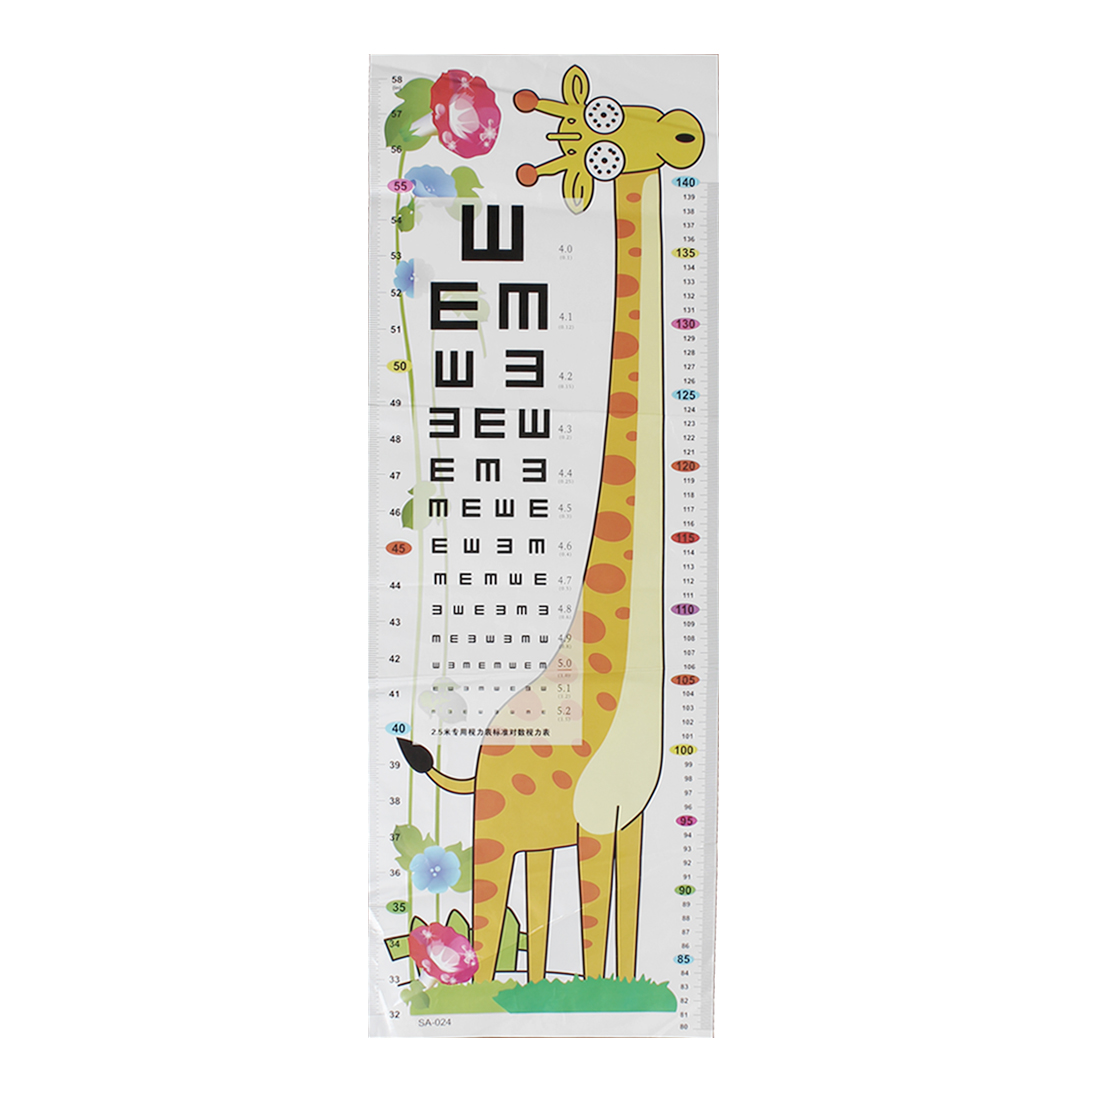 Giraffe Flower Pattern Kids Growth Record Height Measure Chart Wall Sticker Decal Post Room Decoration